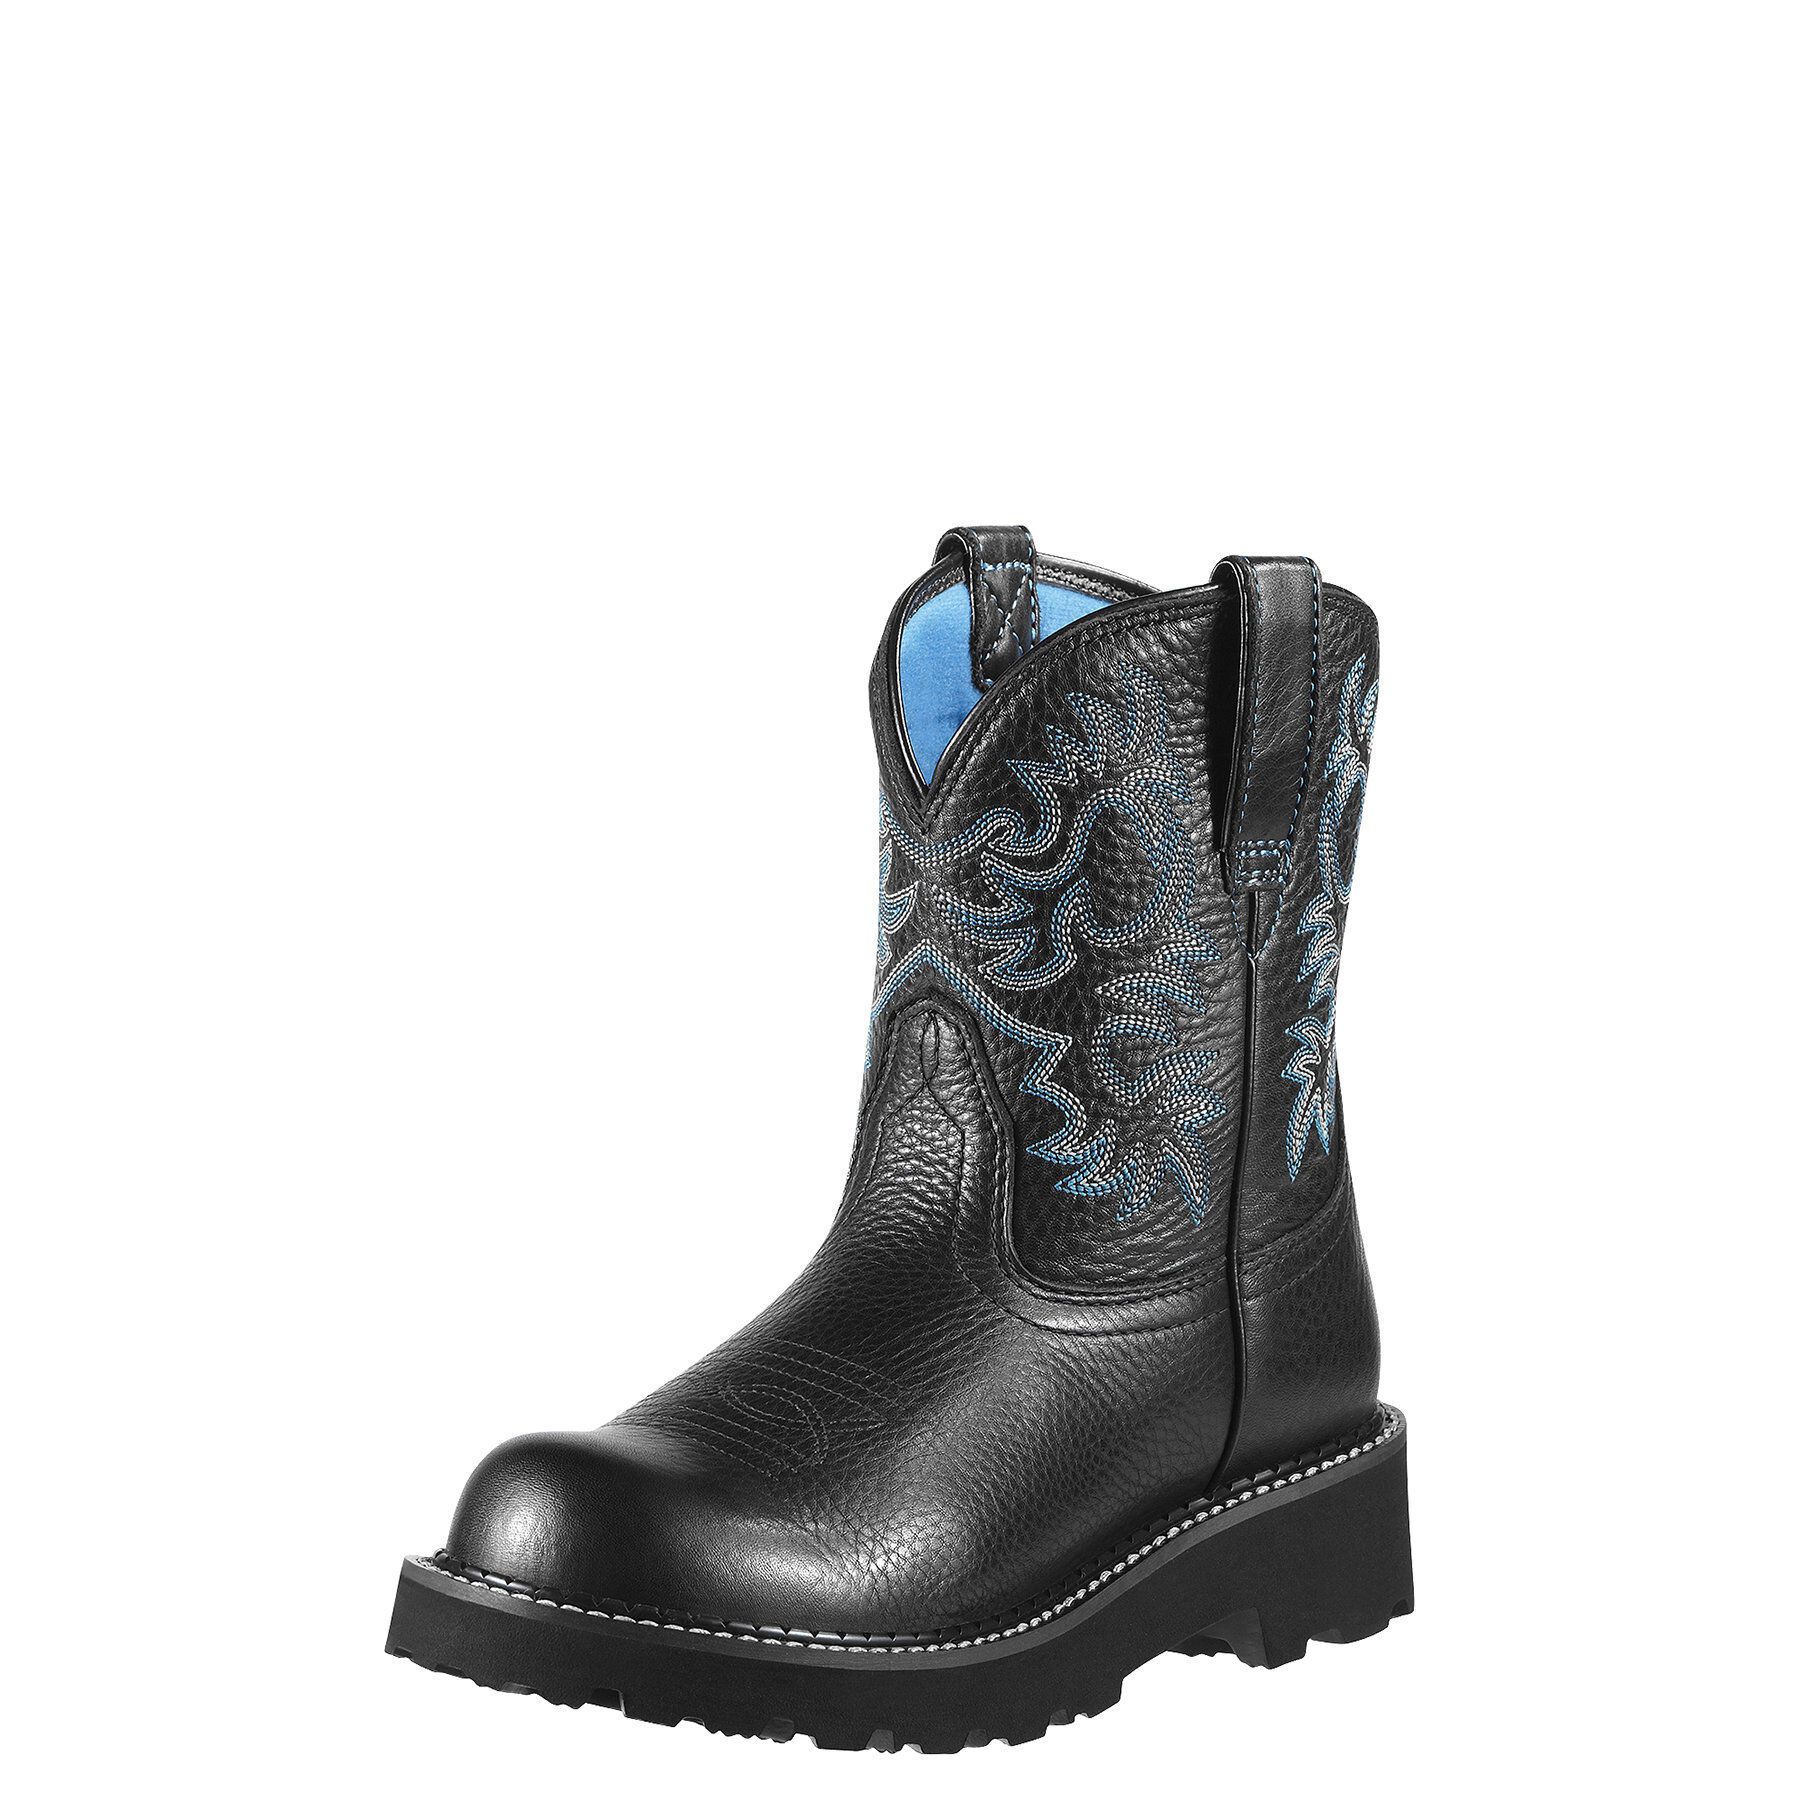 Women's Fatbaby Western Boots in Black Deertan Leather by Ariat